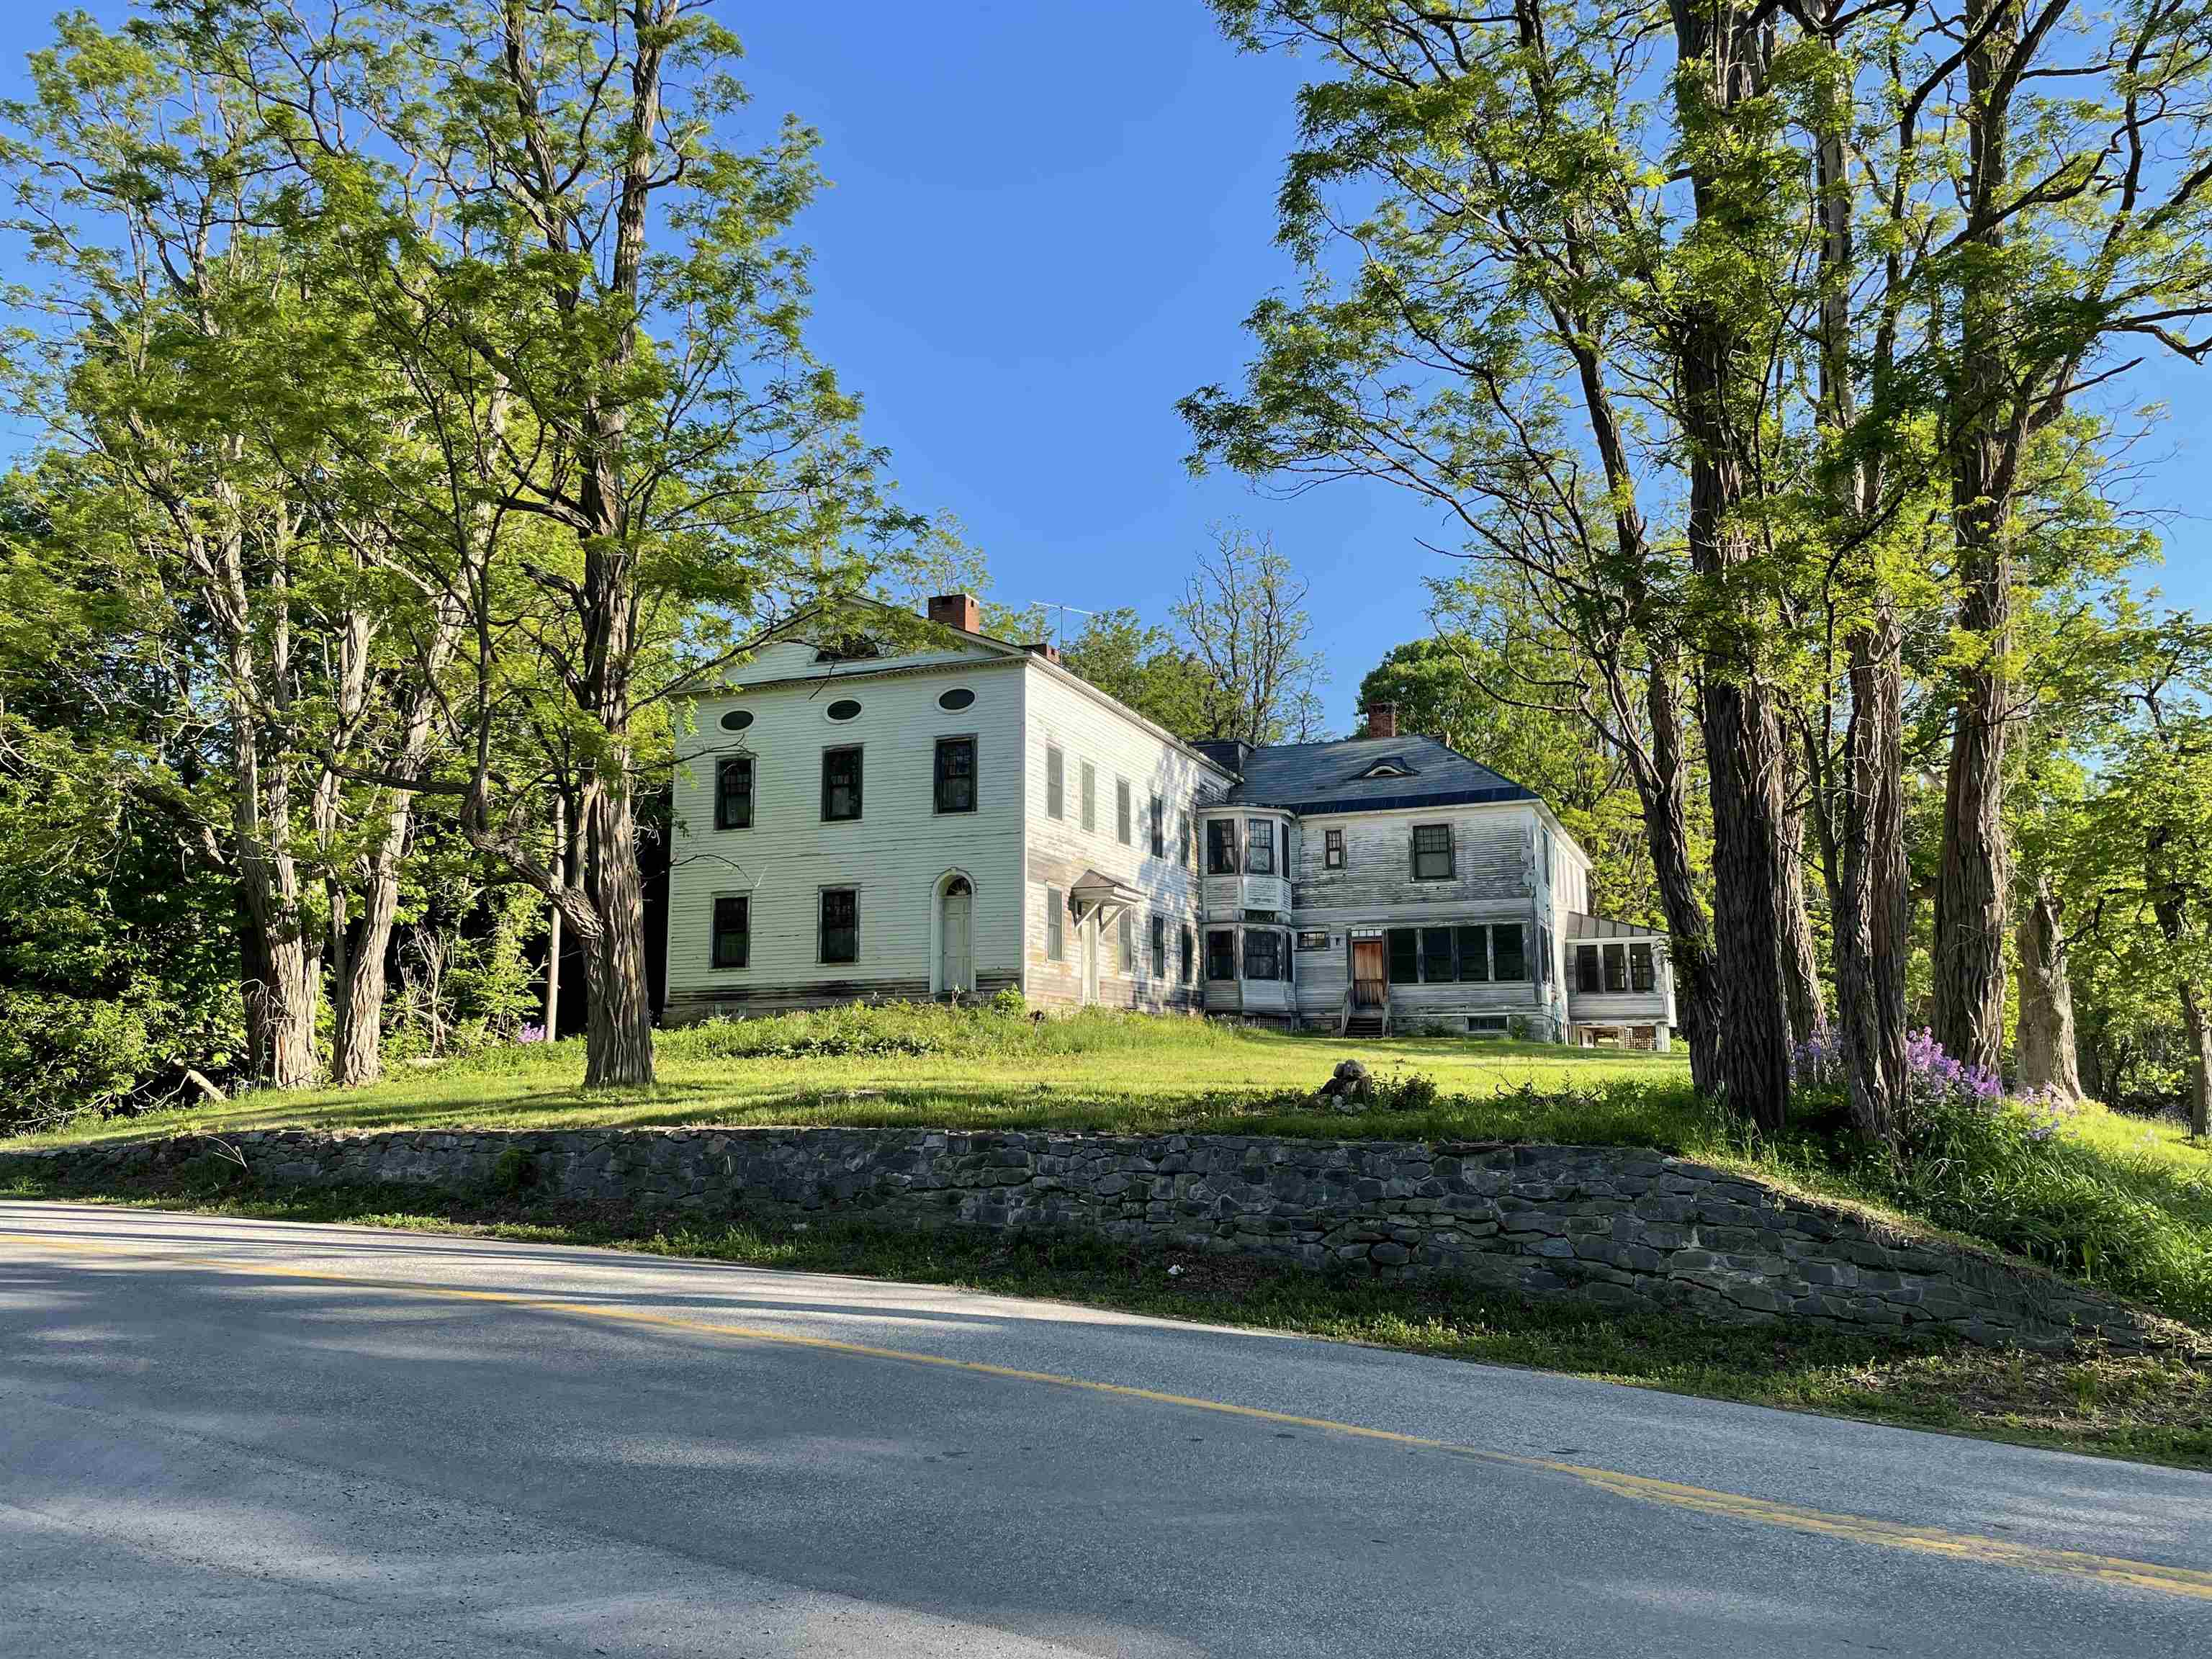 Photo of 51 Seminary Street Extension Middlebury VT 05753